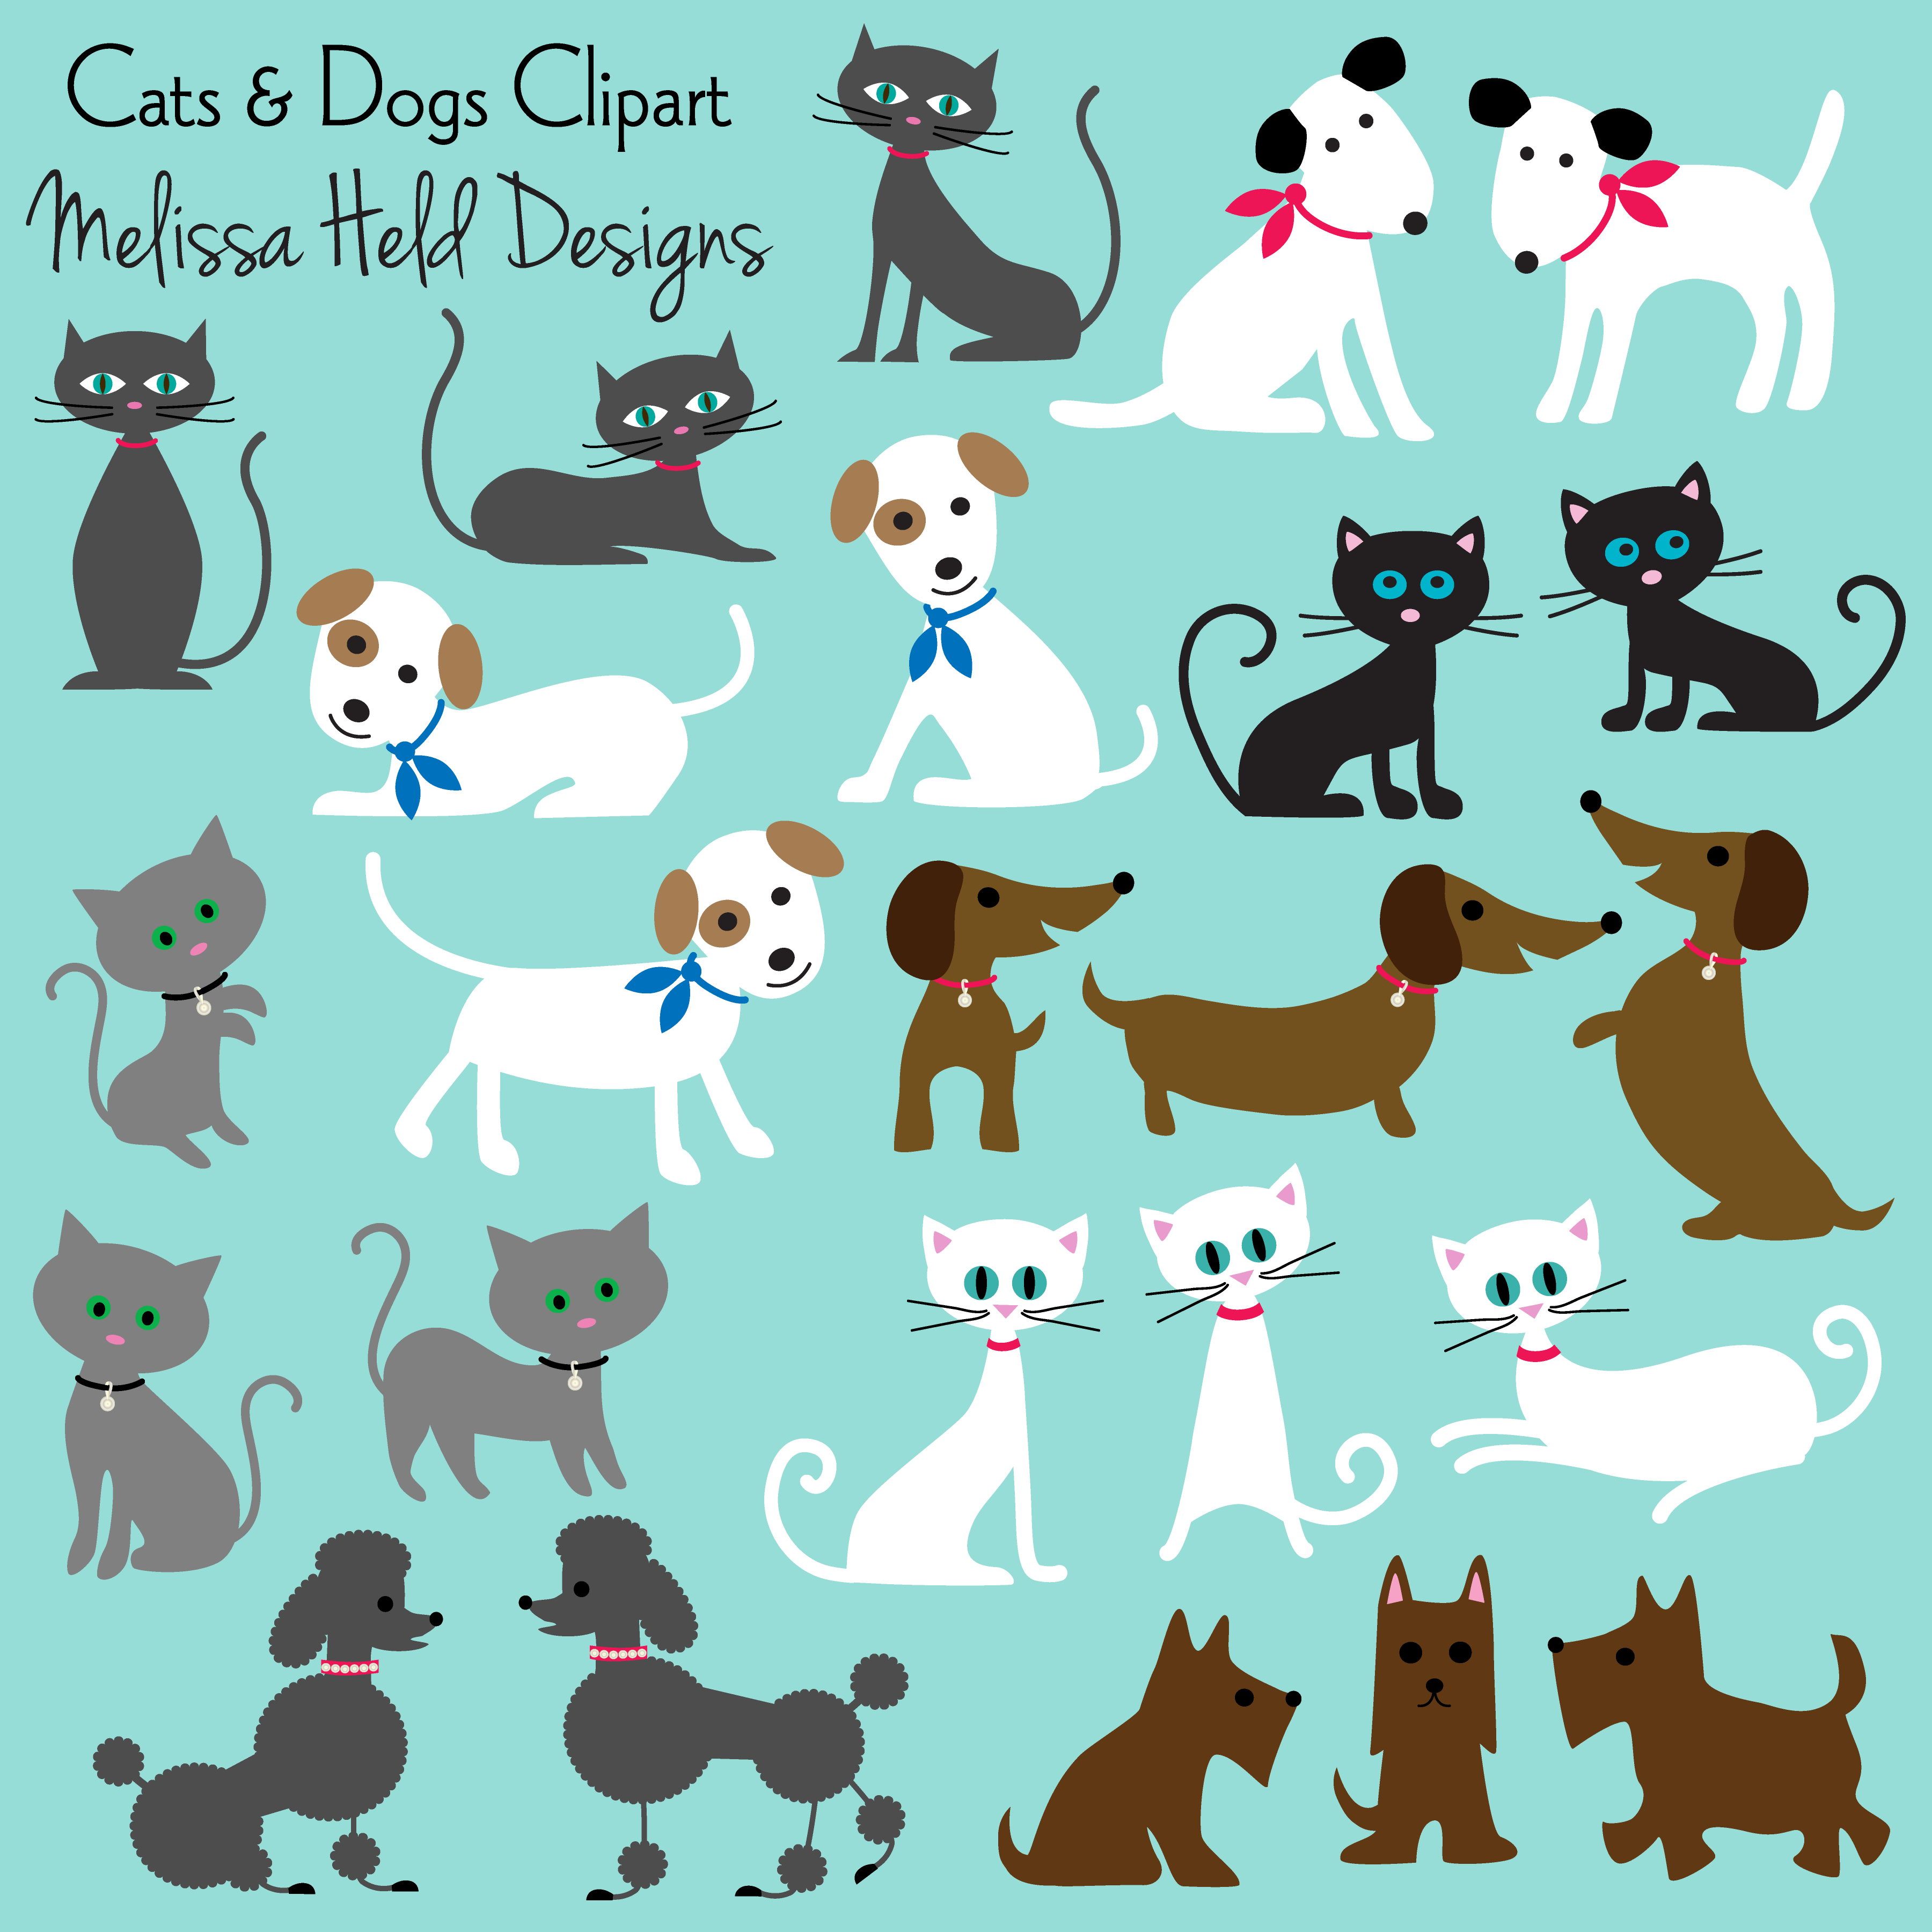 Cats & Dogs Clipart Cute cats, dogs, Dog cat, Cute dogs